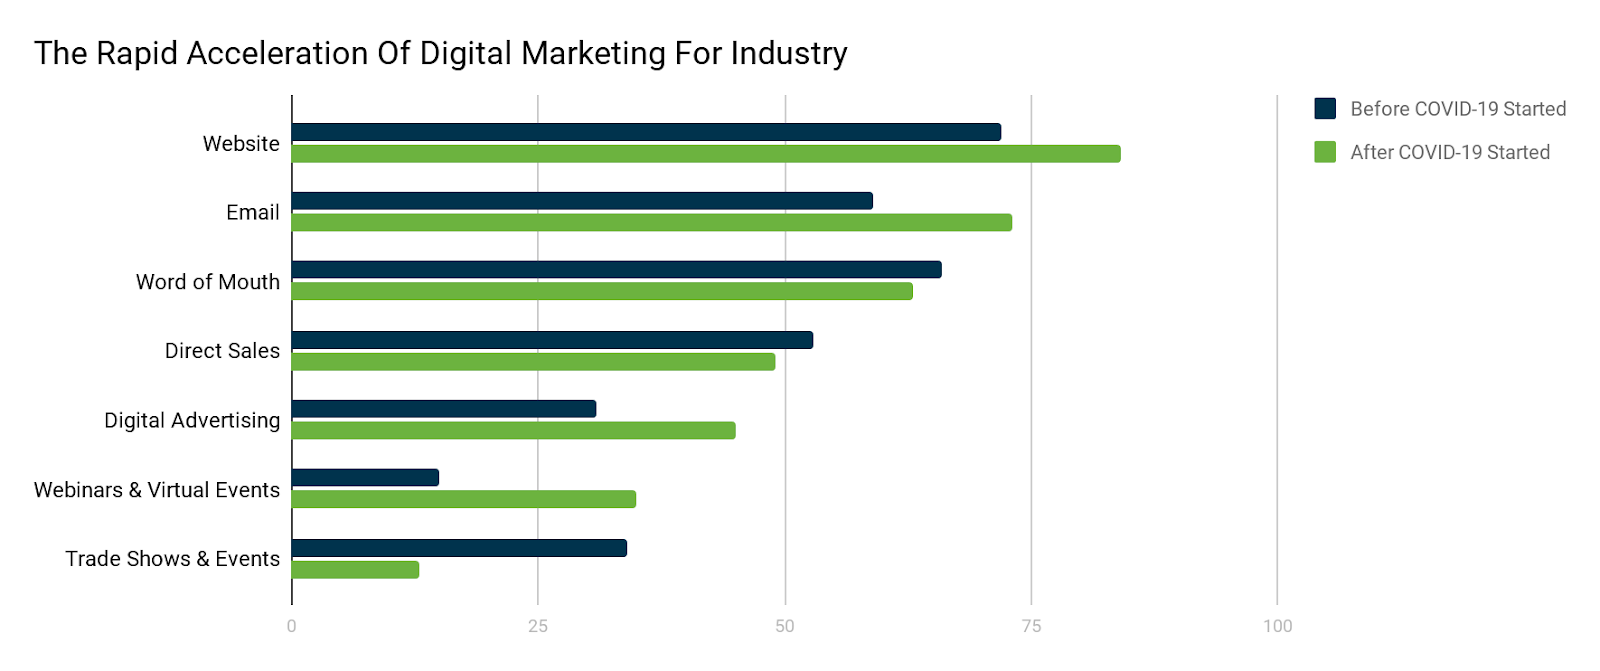 The Rapid Acceleration Of Digital Marketing For Industry